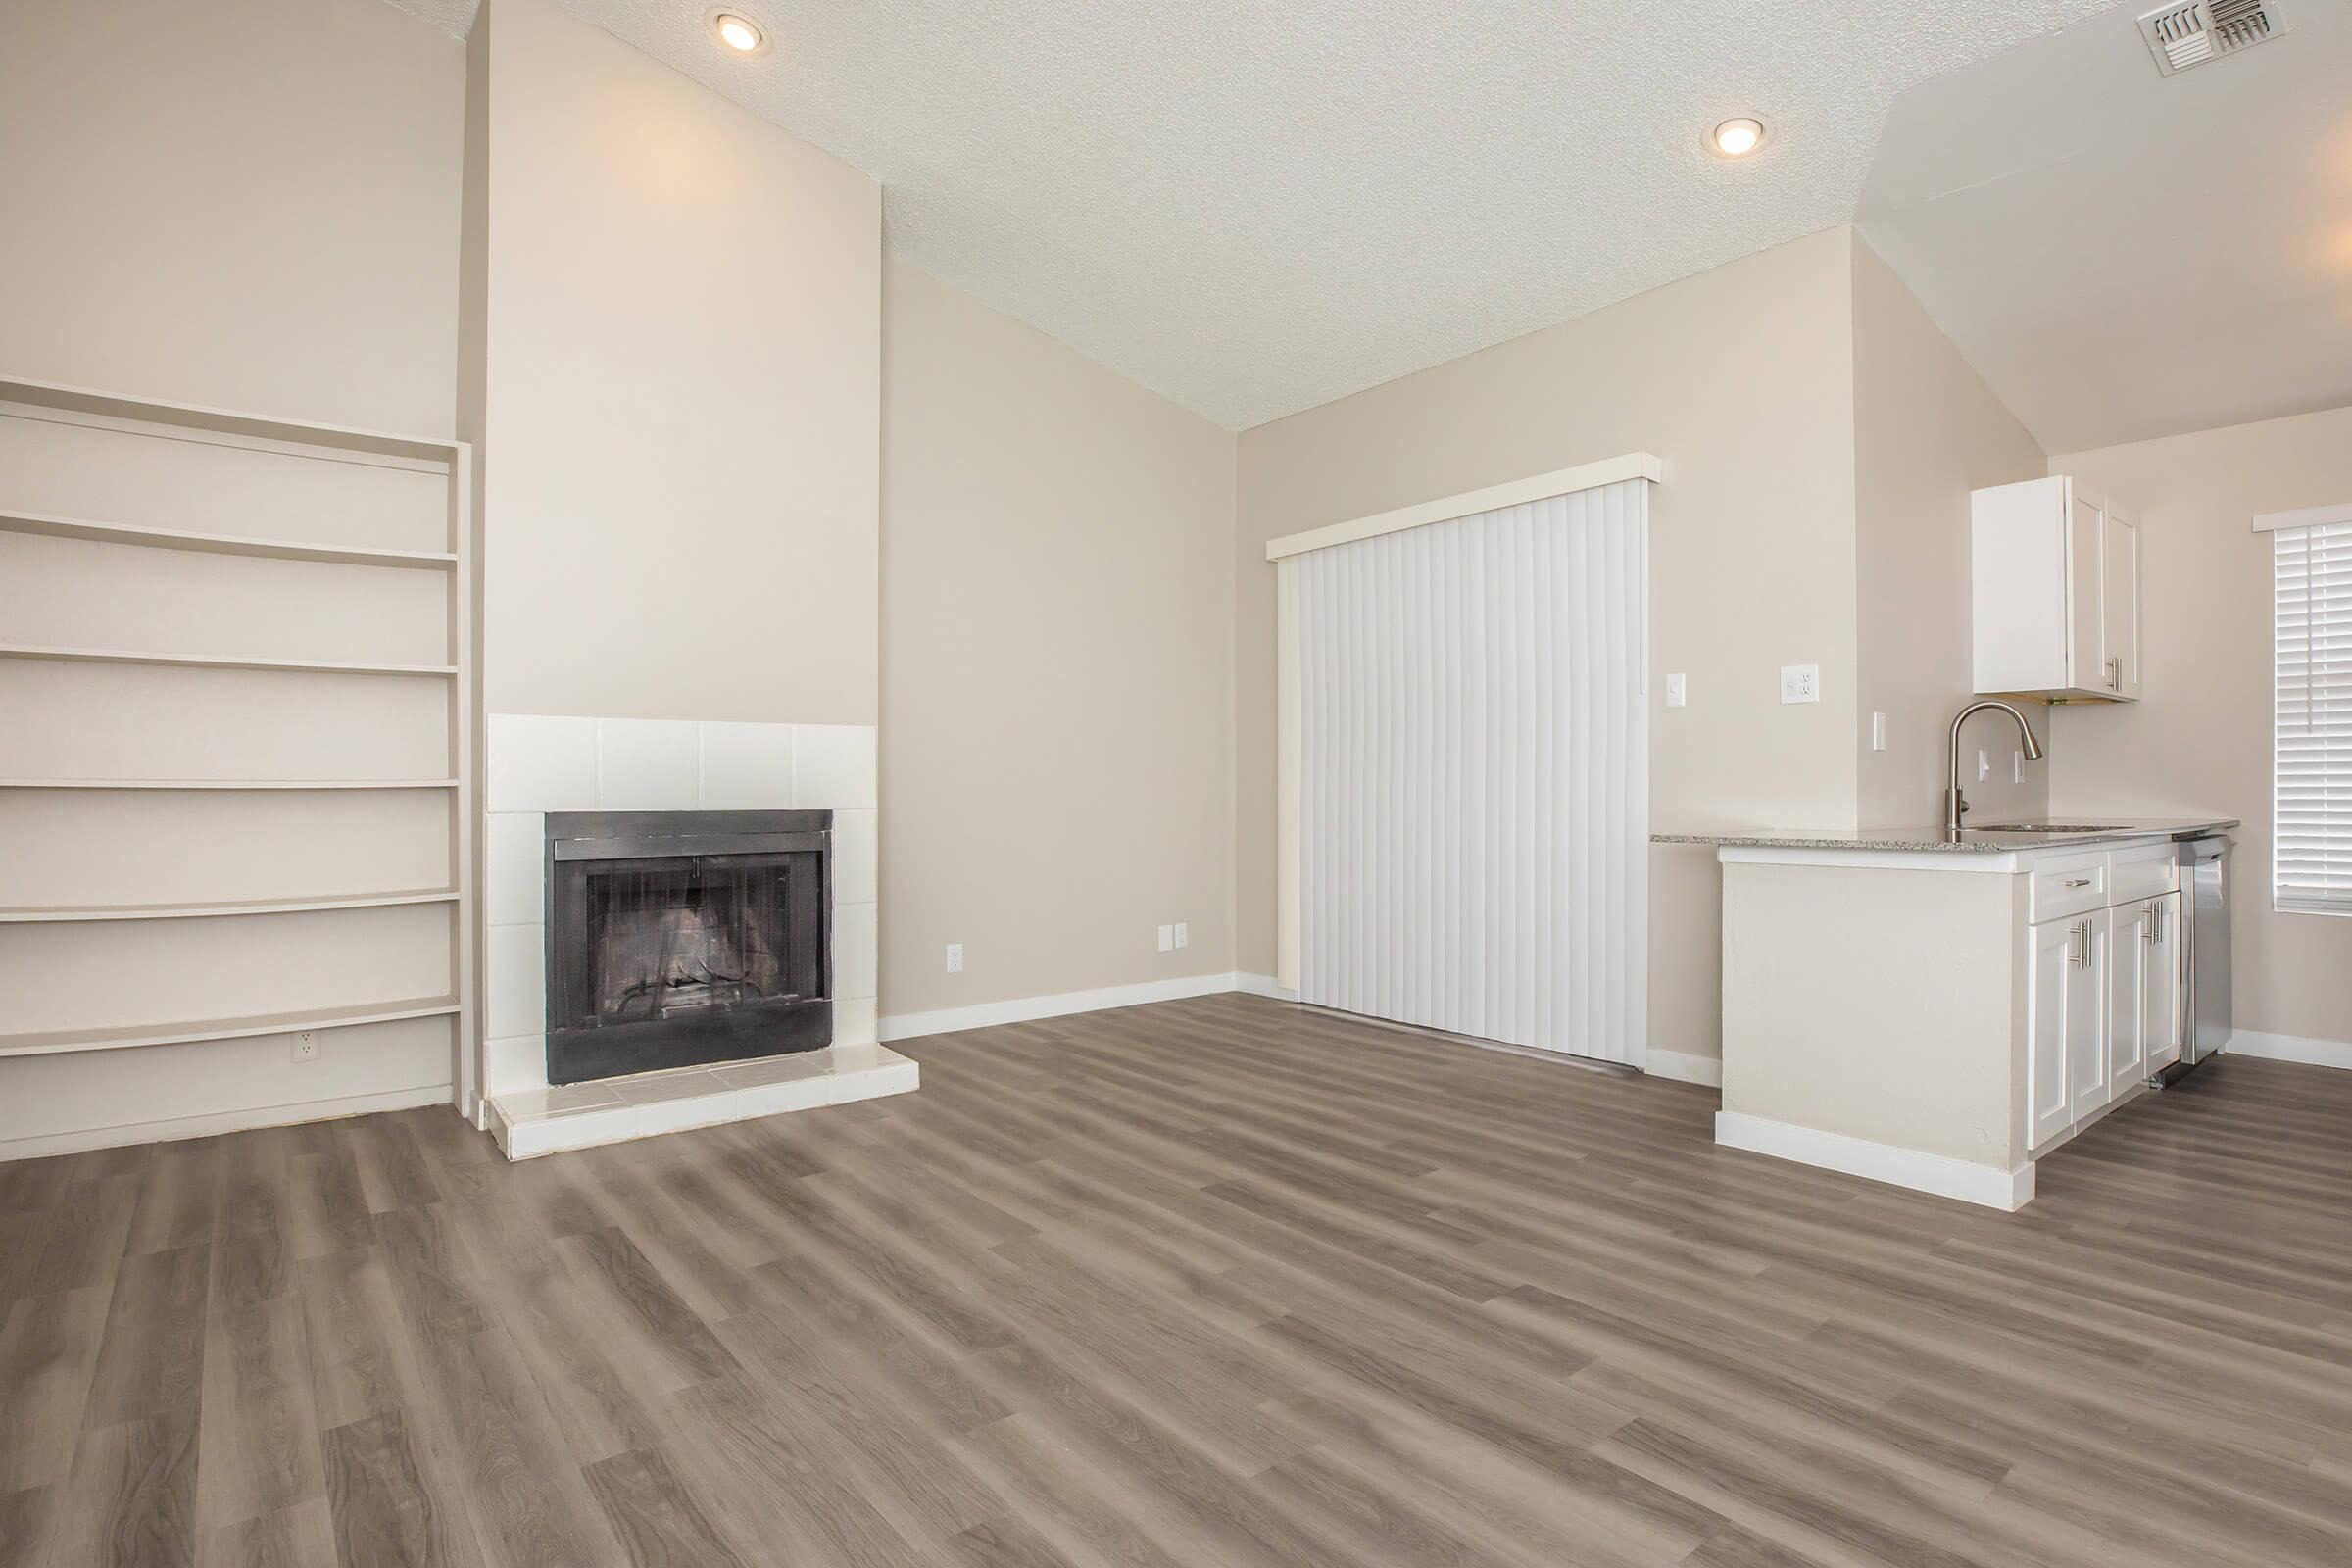 TIDES AT CHANDLER HAS OPEN FLOOR PLANS